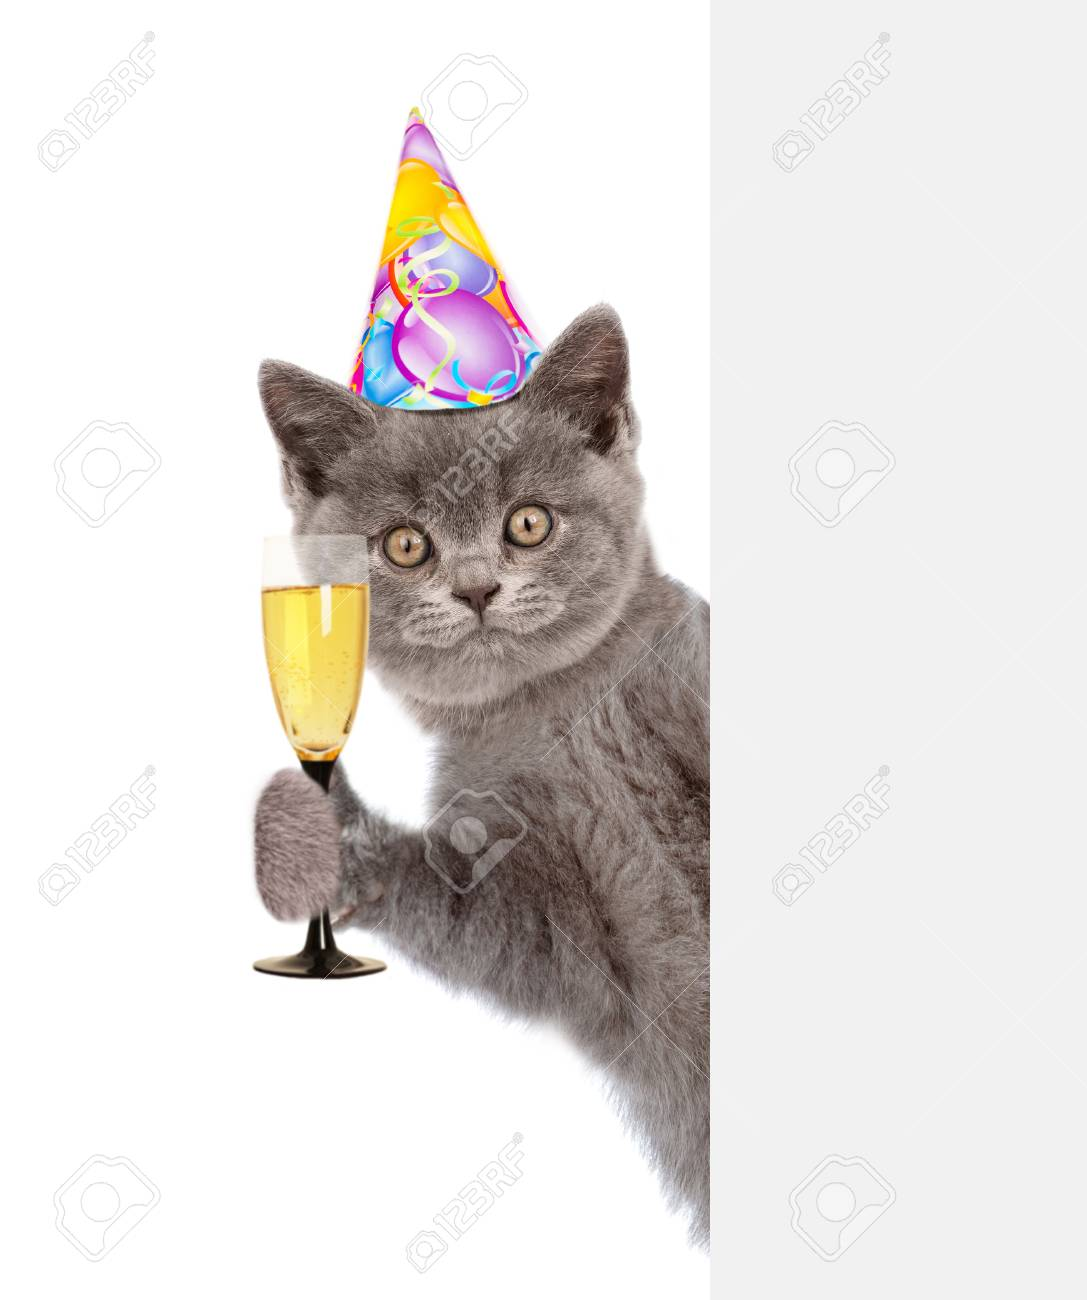 Cat In Birthday Hat Holding Glass Of Champagne Behind Empty White Banner Isolated On